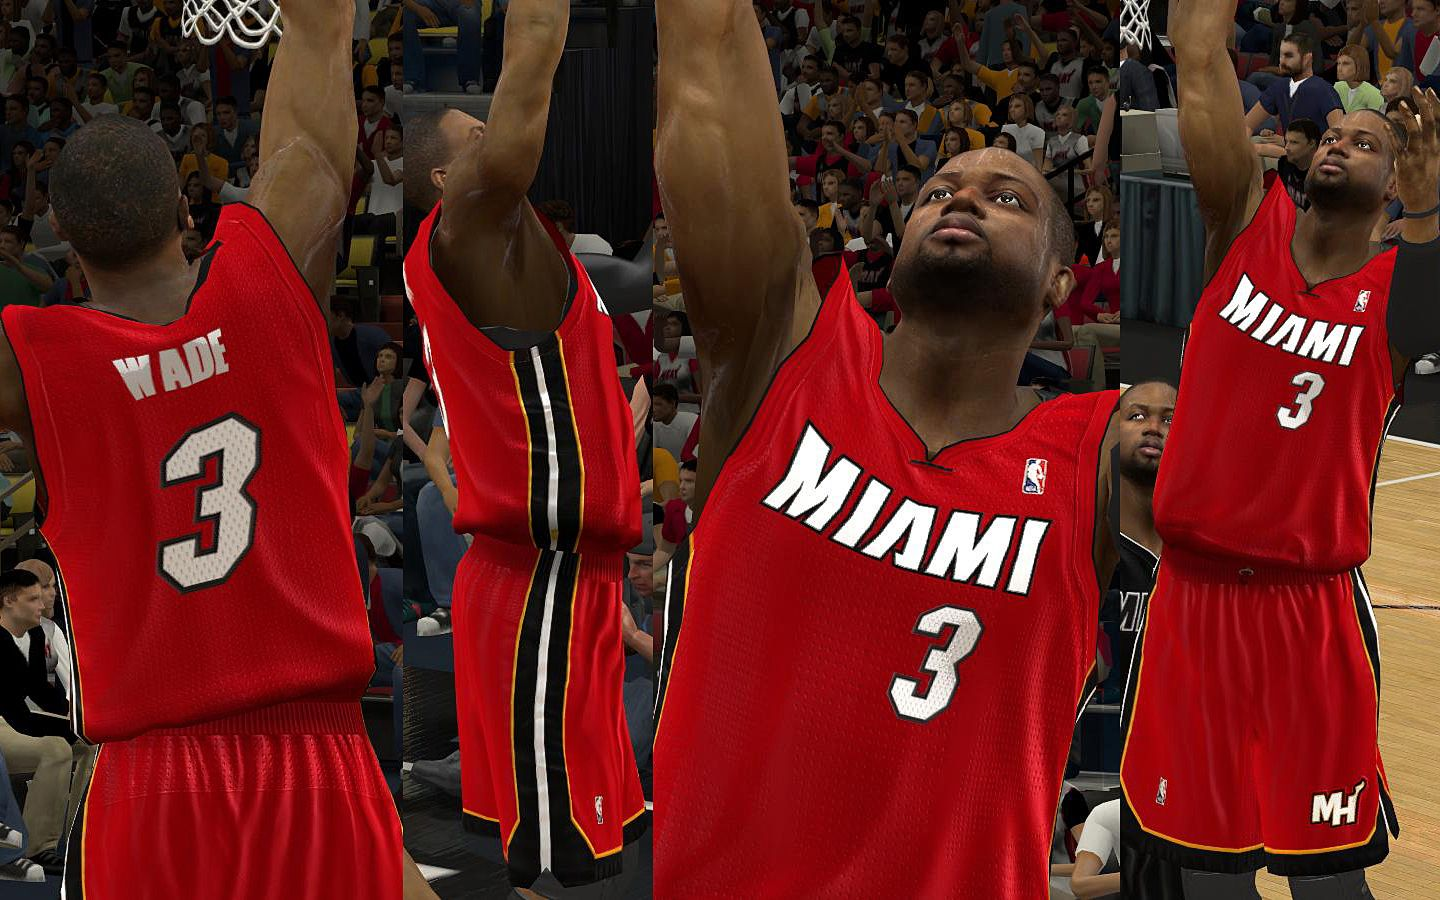 wholesale dealer 6bfd5 deb85 Miami Heat Jersey V.1.5 (Back in Black Jersey & New Warmups ...